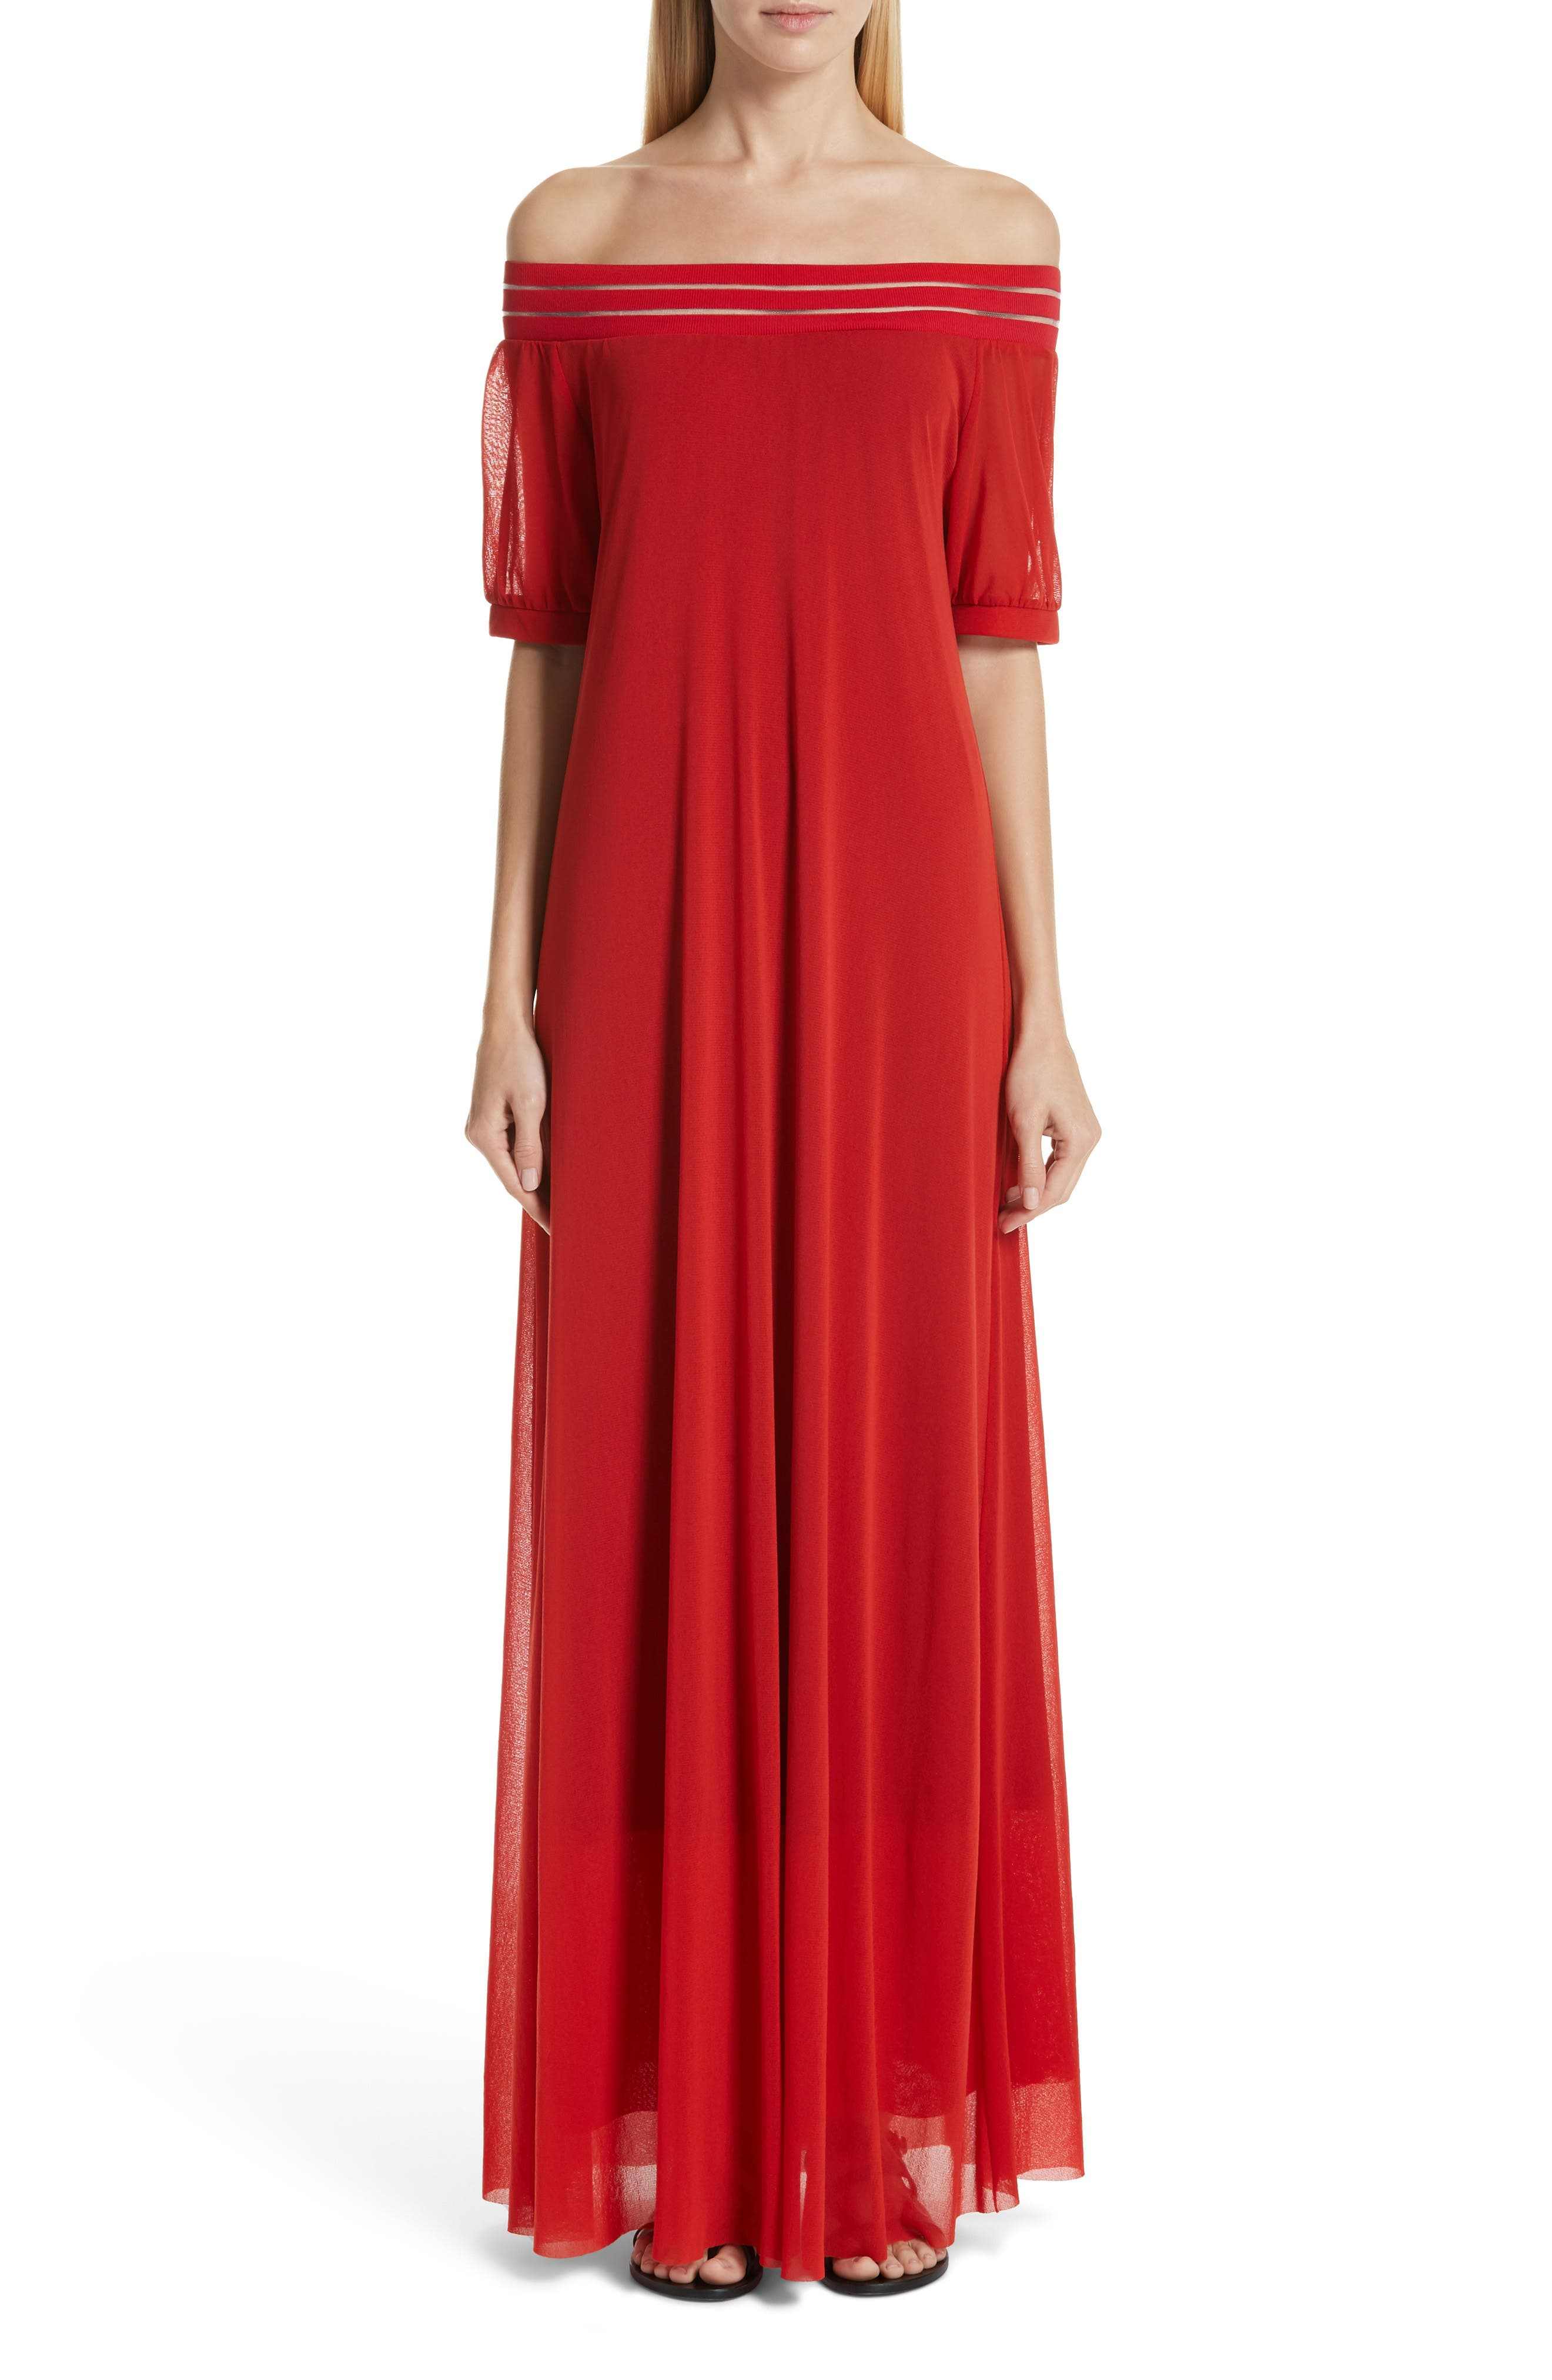 Fuzzi Illusion Off The Shoulder Maxi Dress, Red